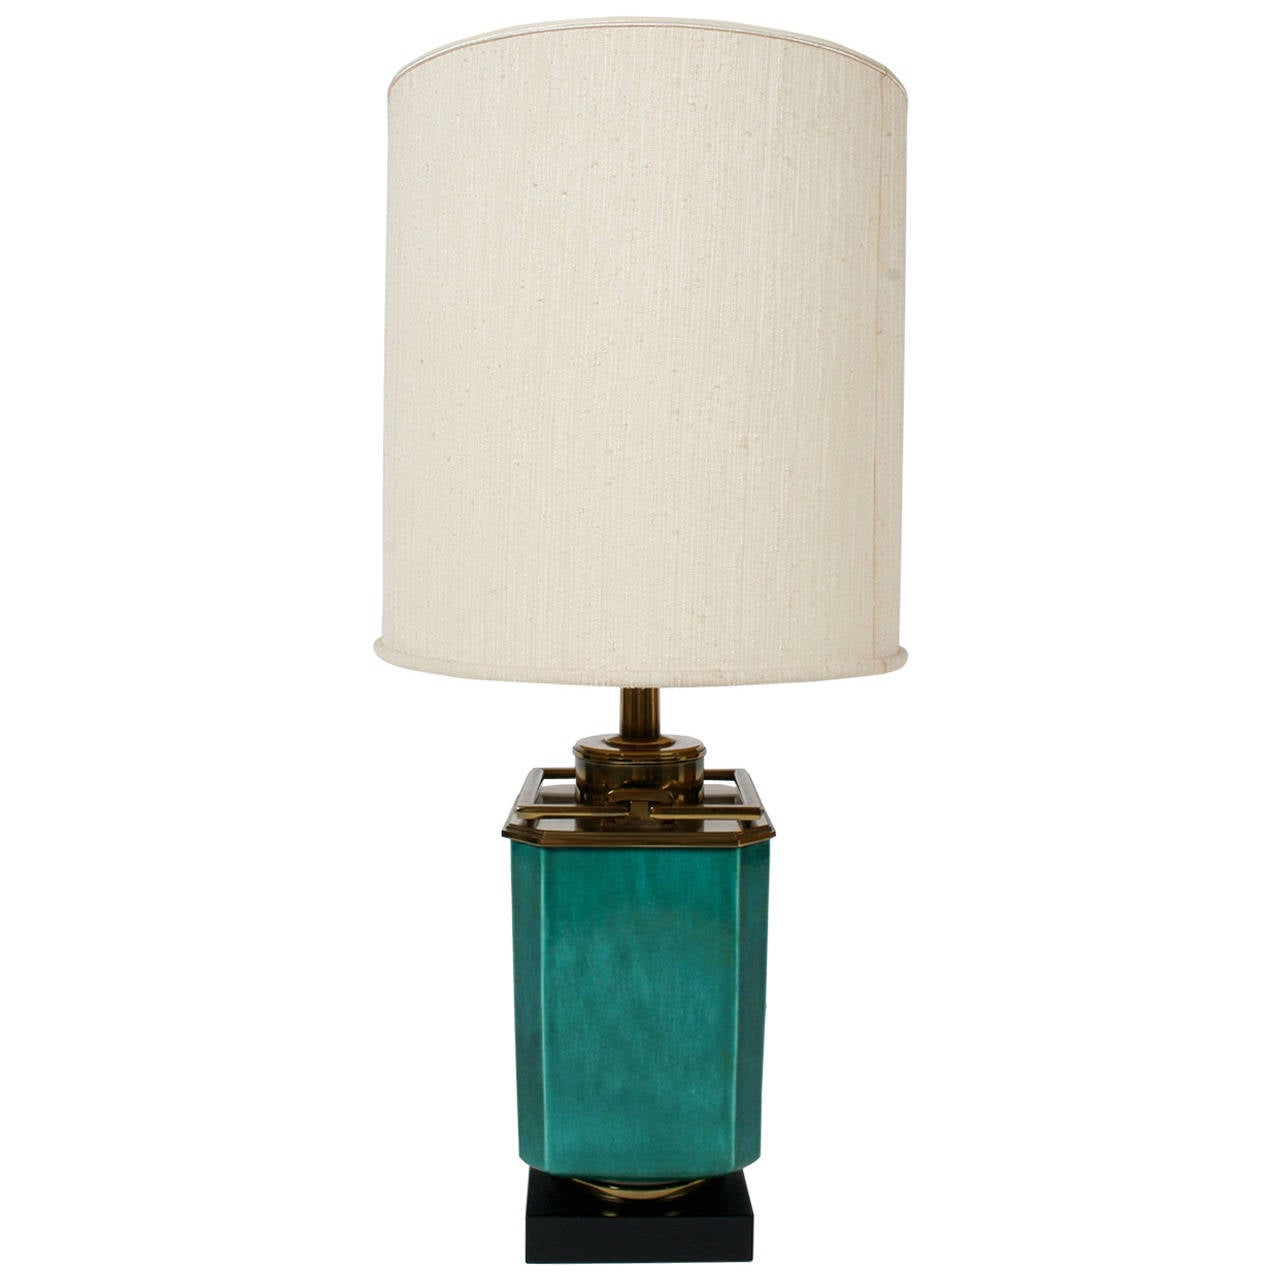 Stiffel Green Ceramic Table Lamp with Brass Fittings